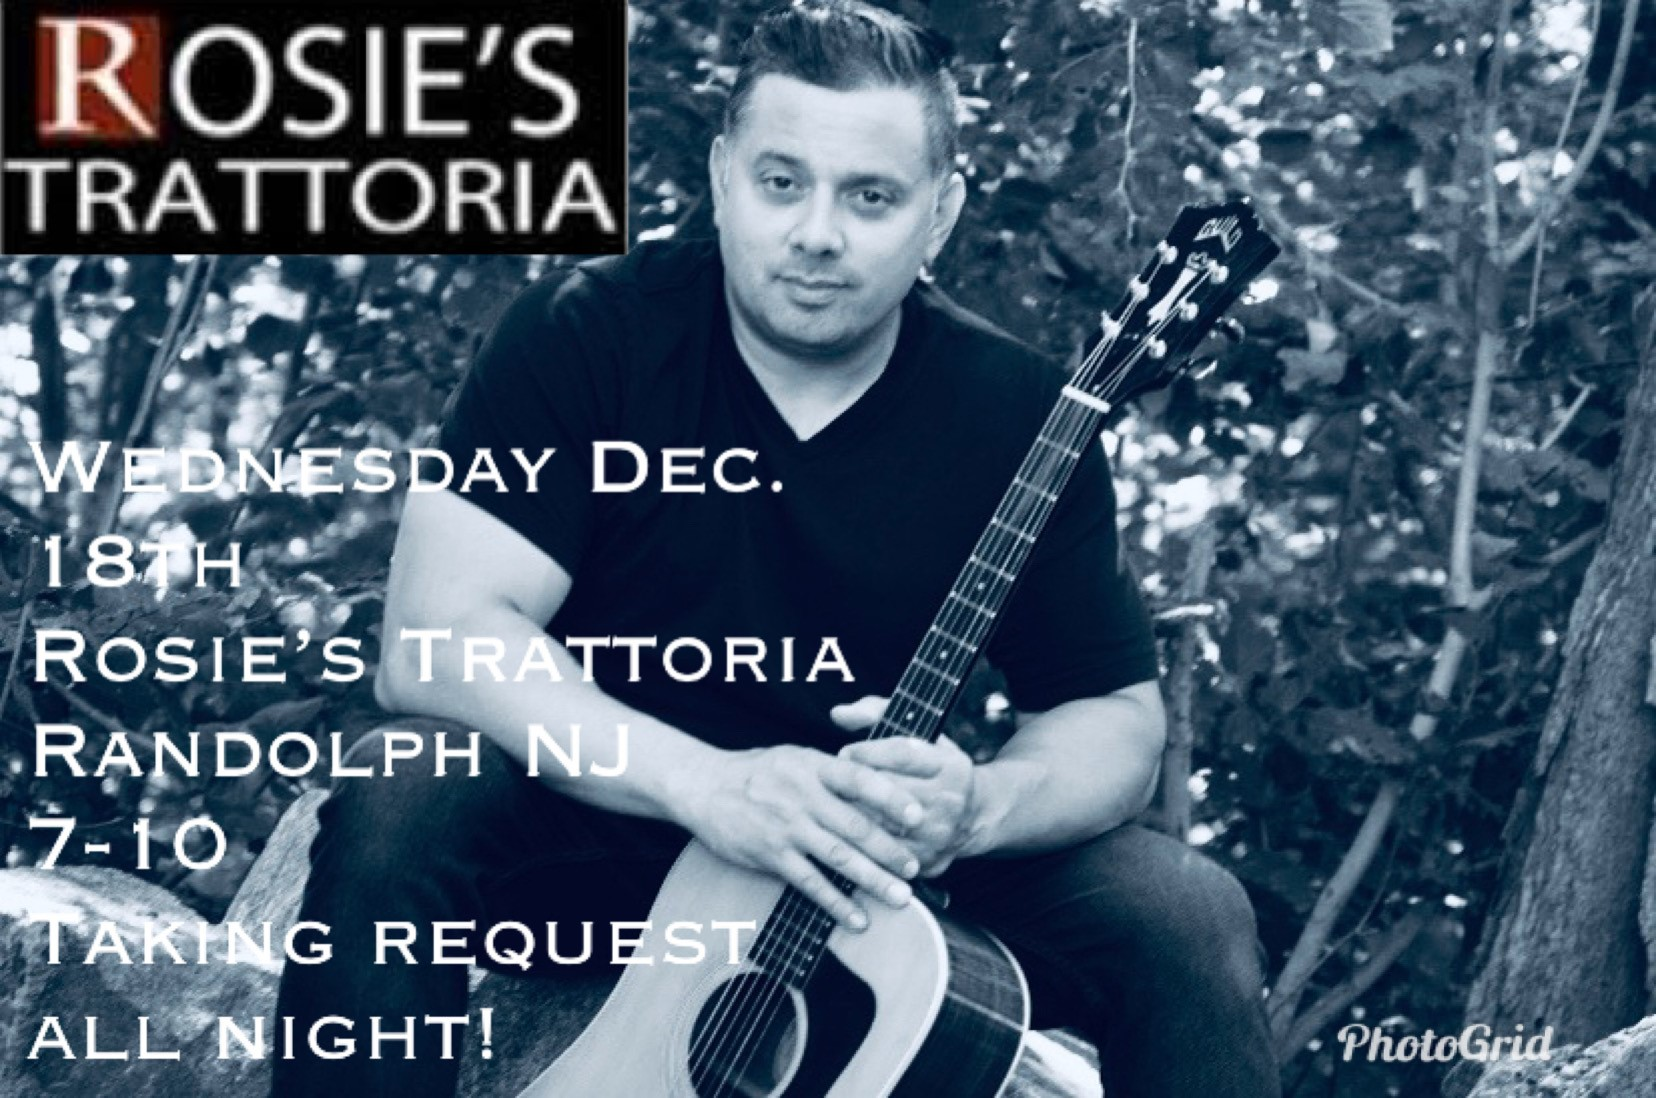 Live Music at Rosie's!